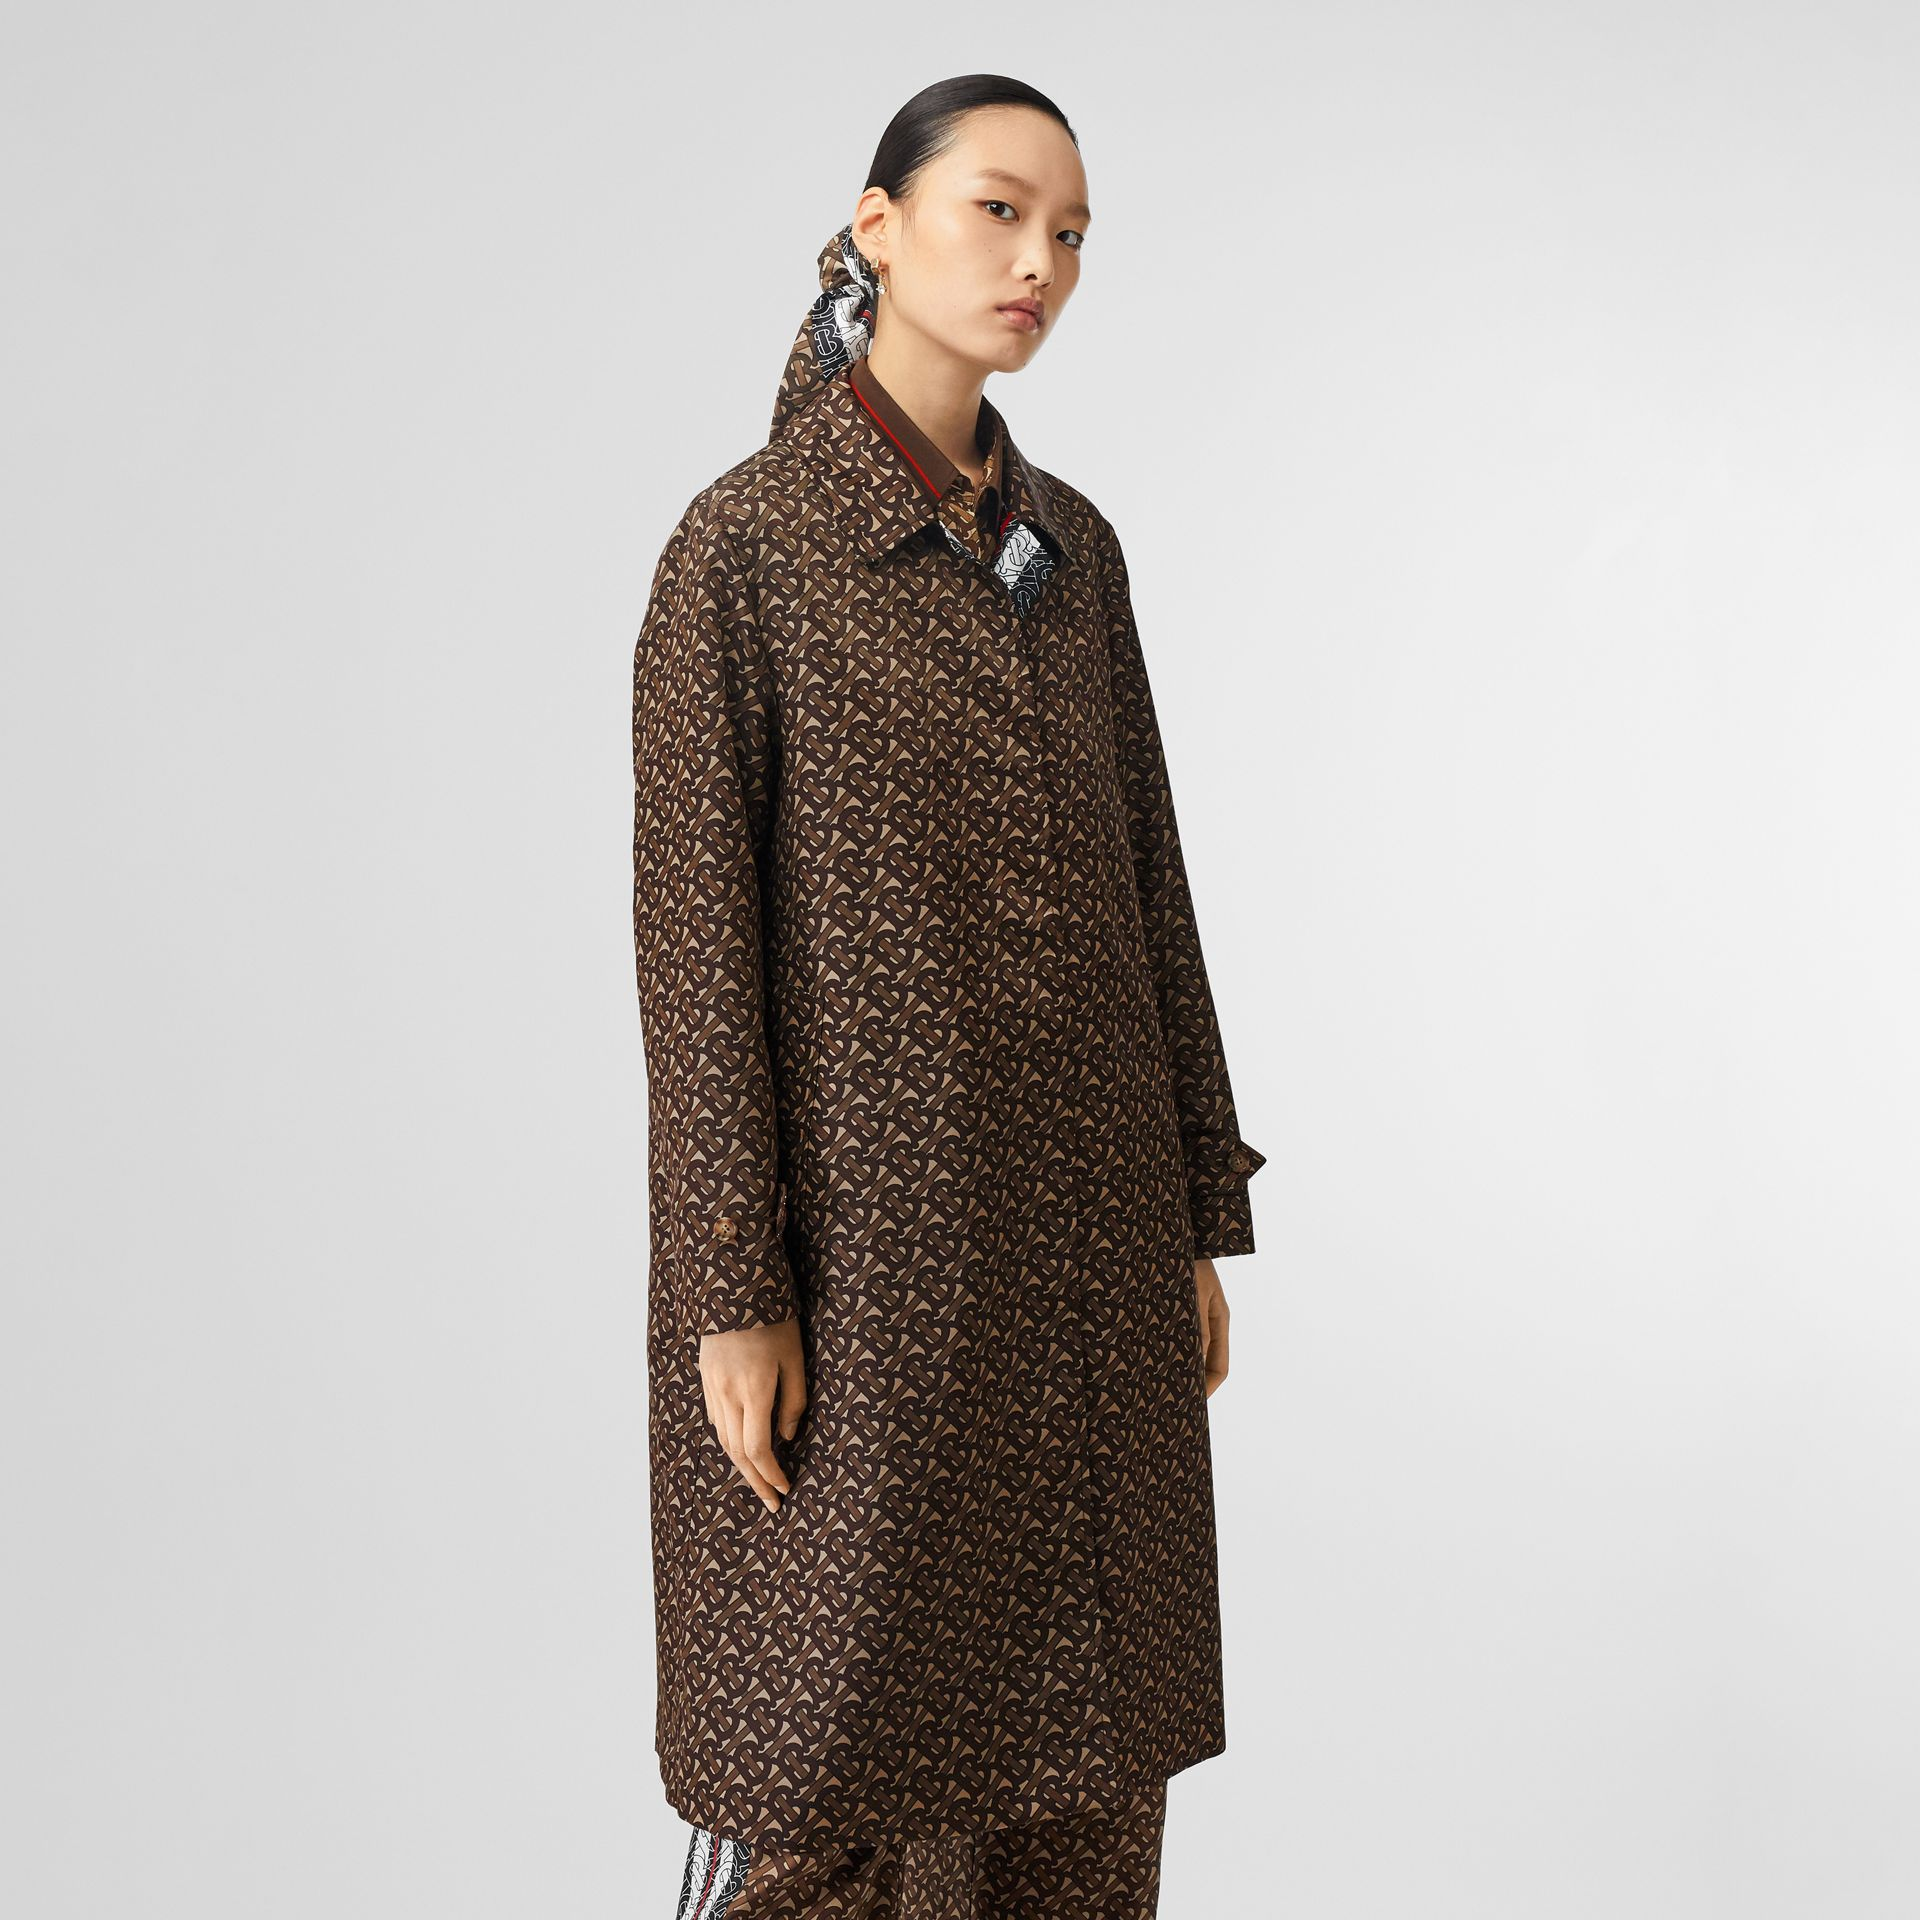 Monogram Stripe Print Nylon Car Coat in Bridle Brown - Women | Burberry Canada - gallery image 5